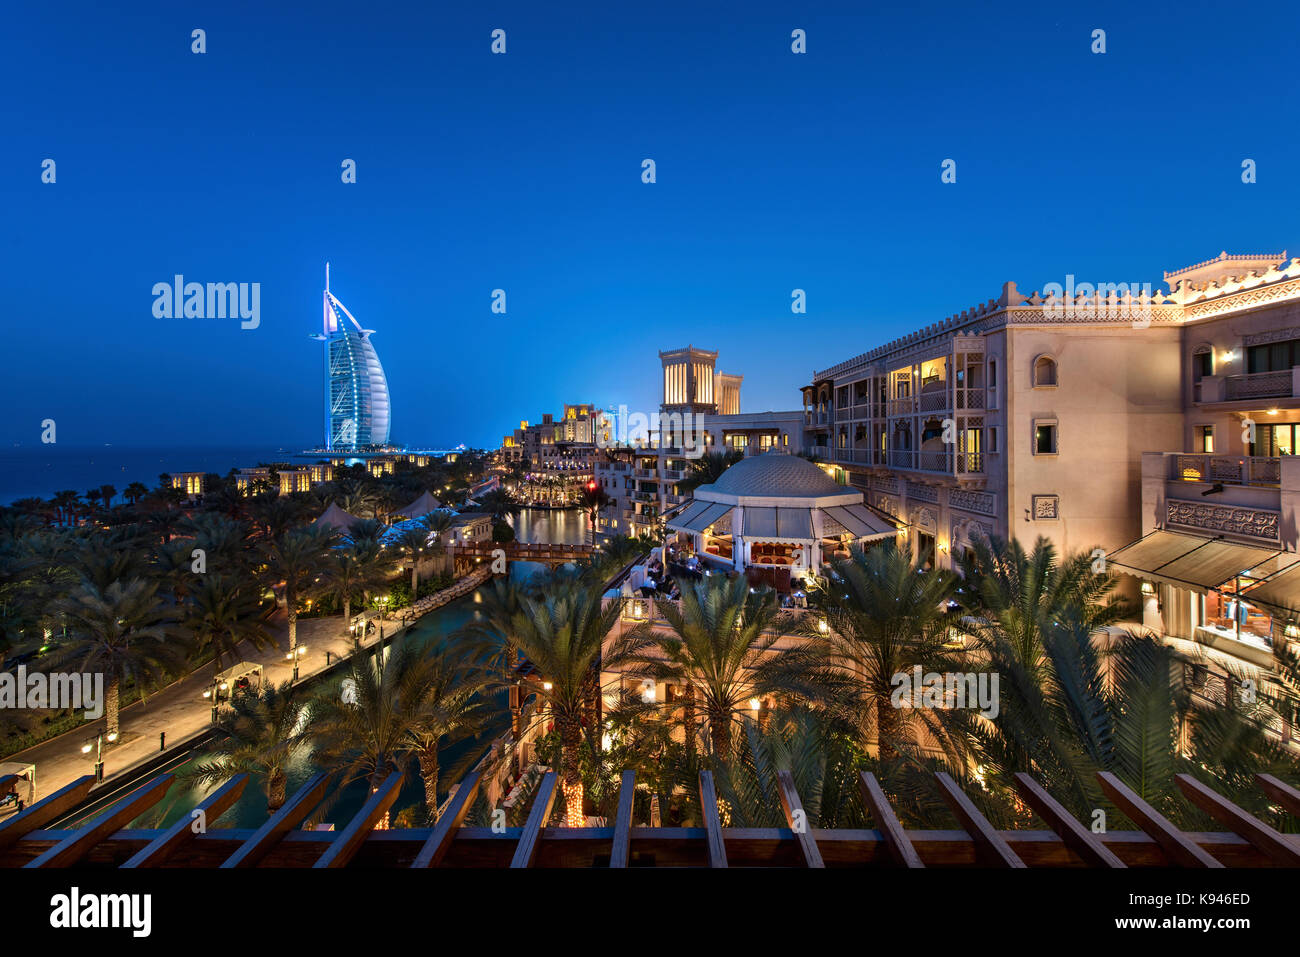 Cityscape of the Dubai, United Arab Emirates at dusk, with illuminated buildings and the Burj Al Arab in the distance. - Stock Image